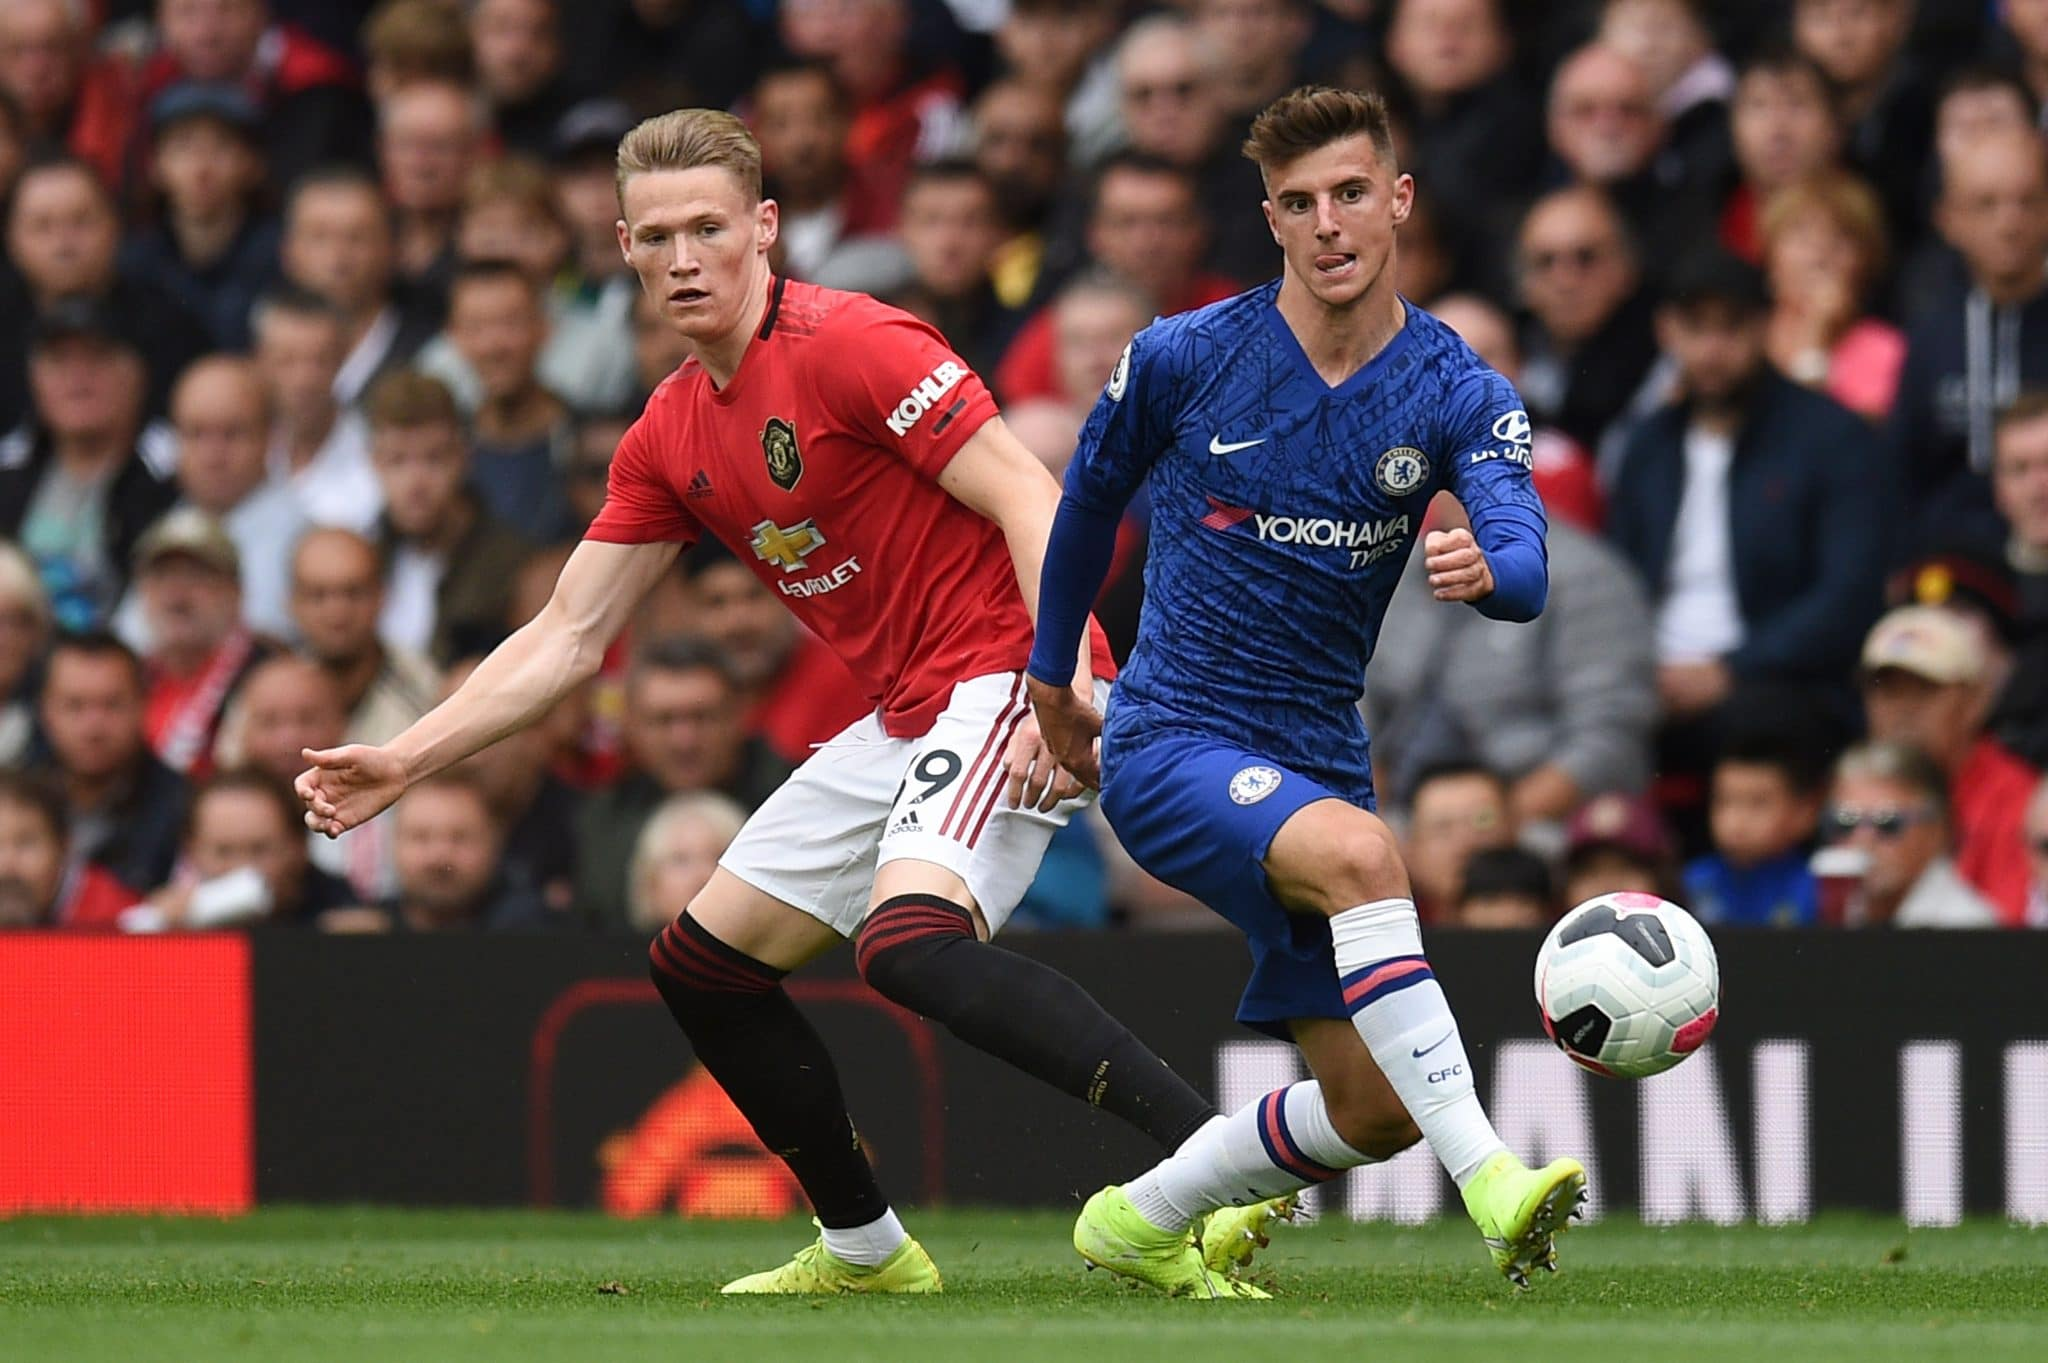 Chelsea vs Man Utd Predictions, Odds and Betting Tips